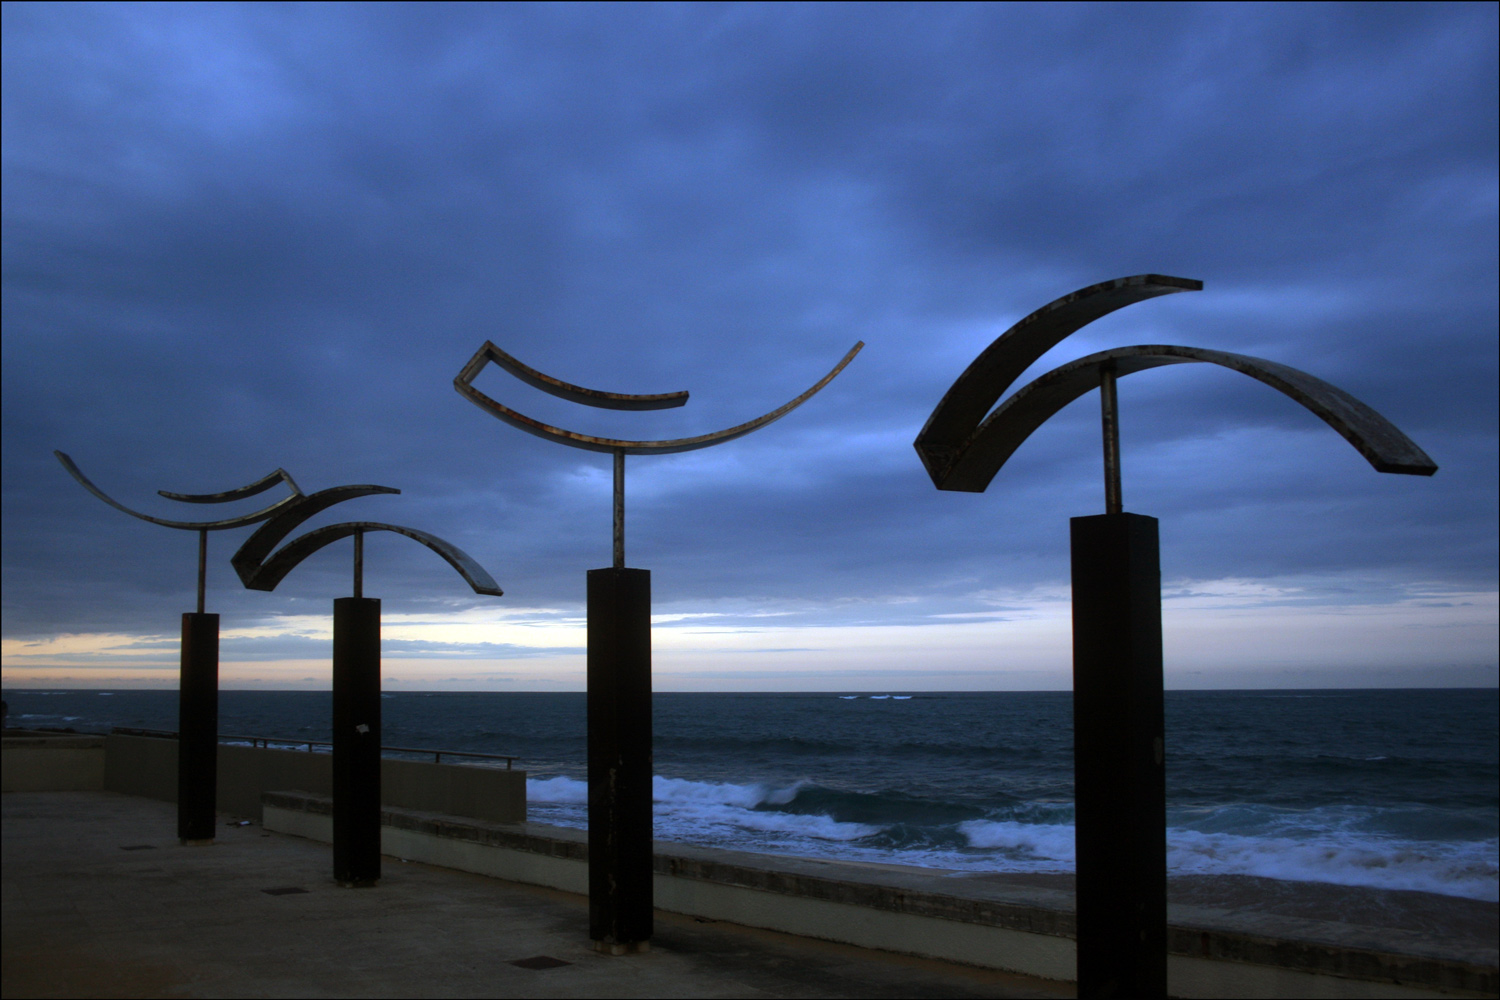 Public Art by the Sea